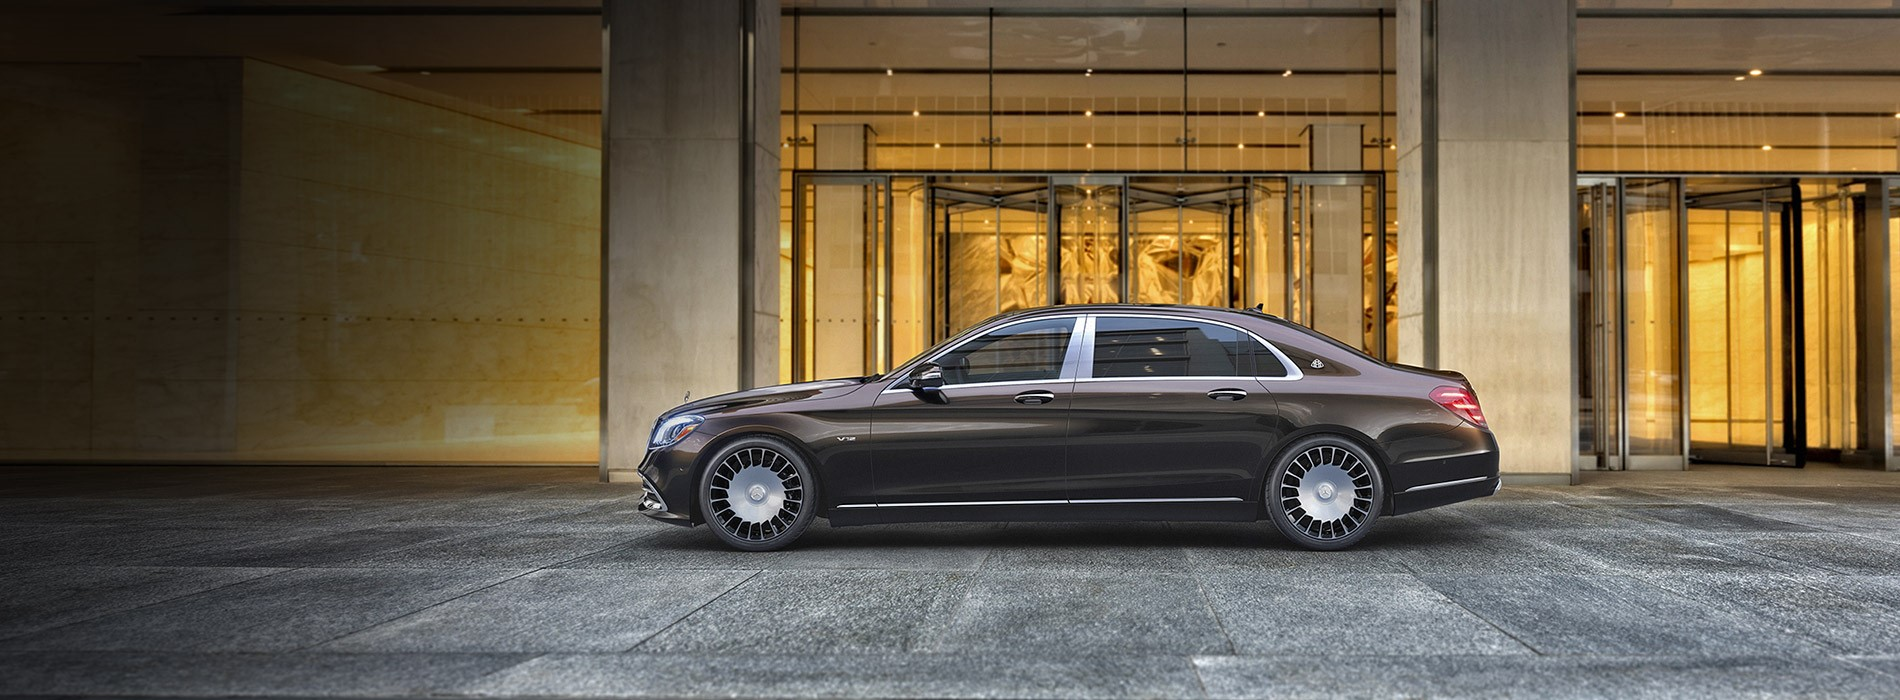 Maybach Sedán